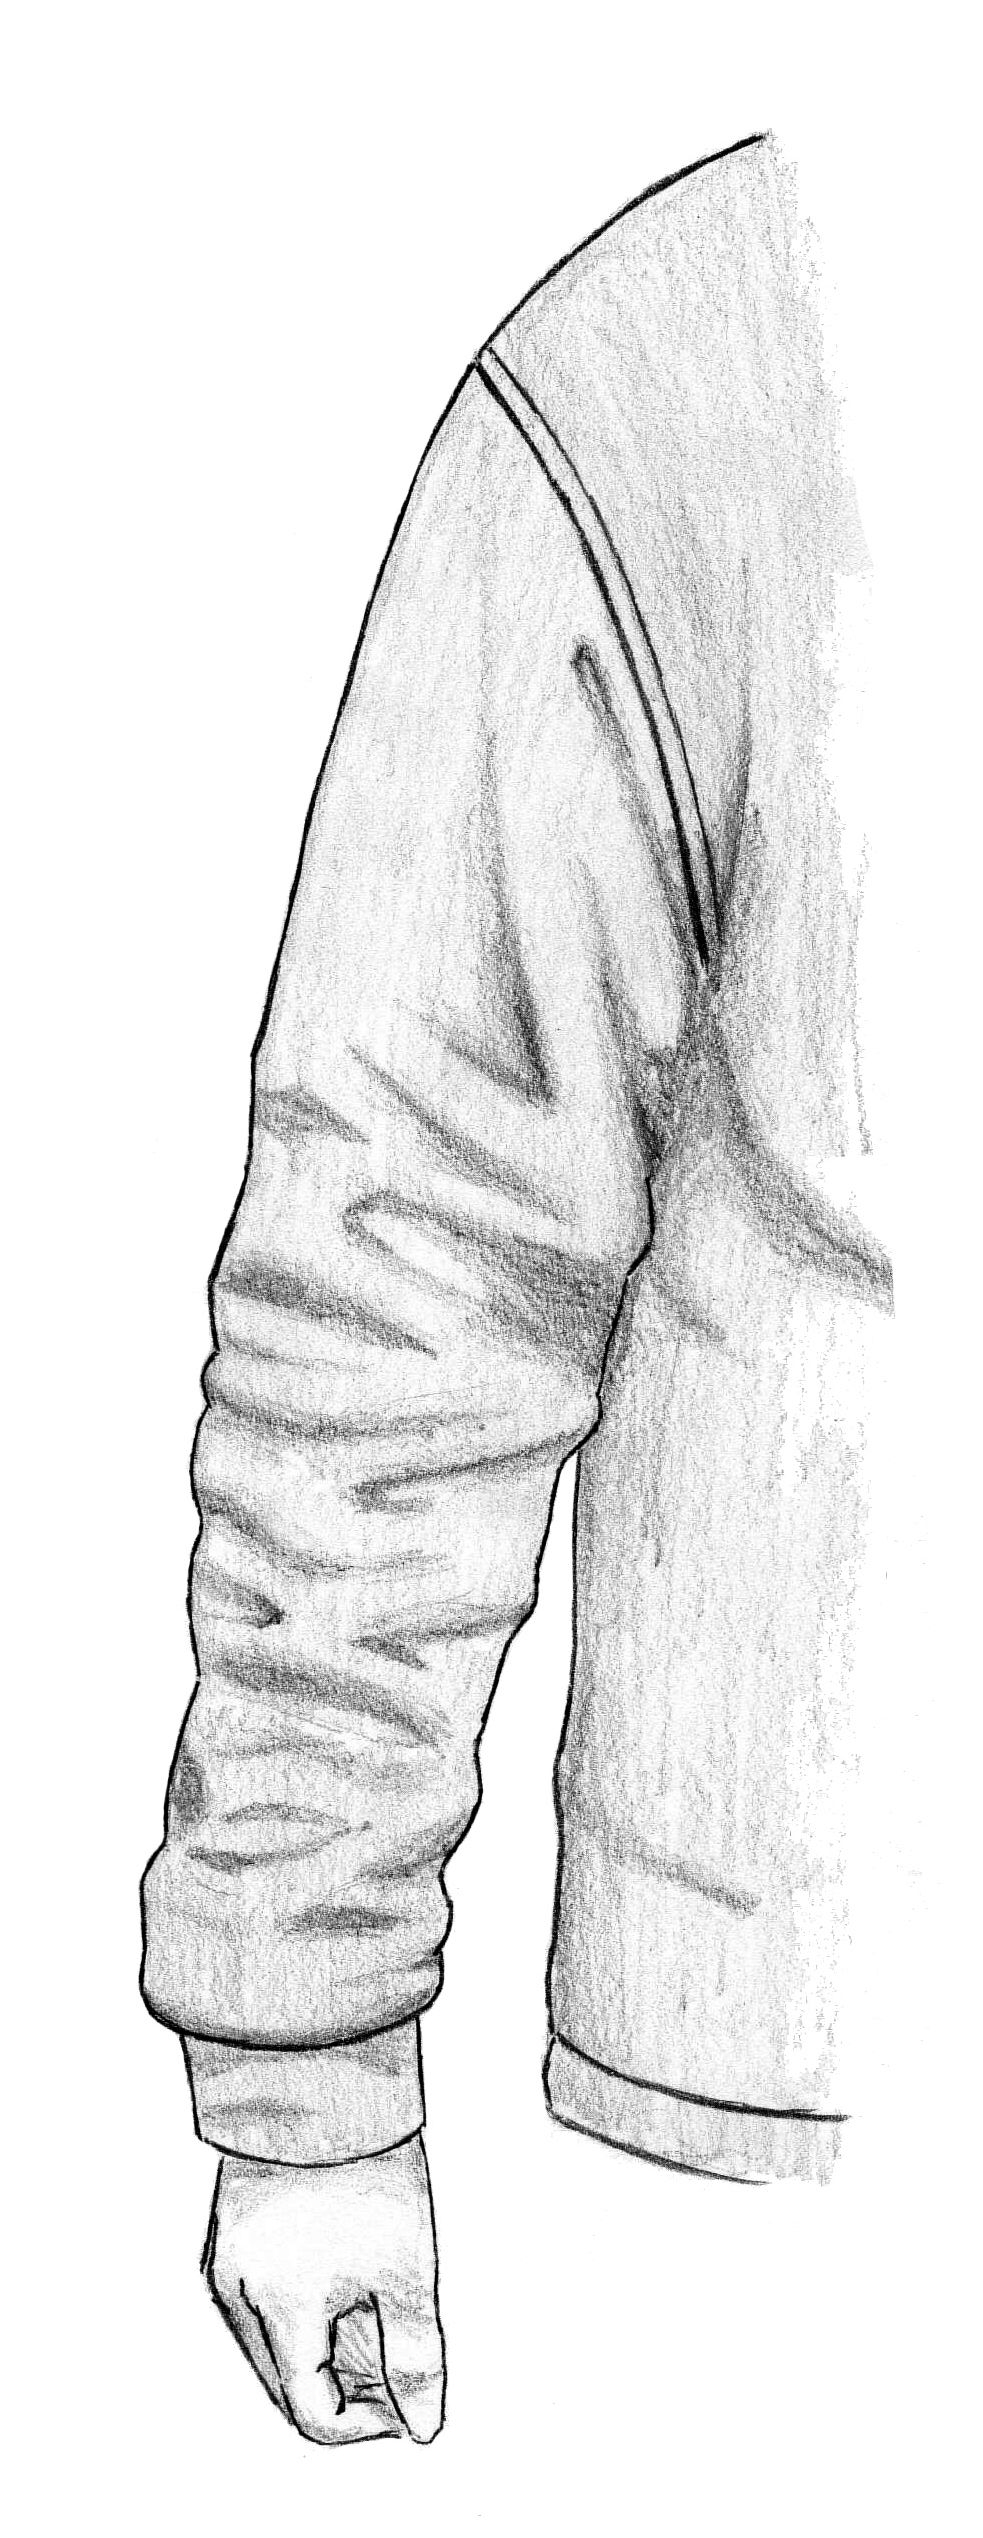 Pin by Pragna Kolli on Sketching | Drawing clothes, Drawings